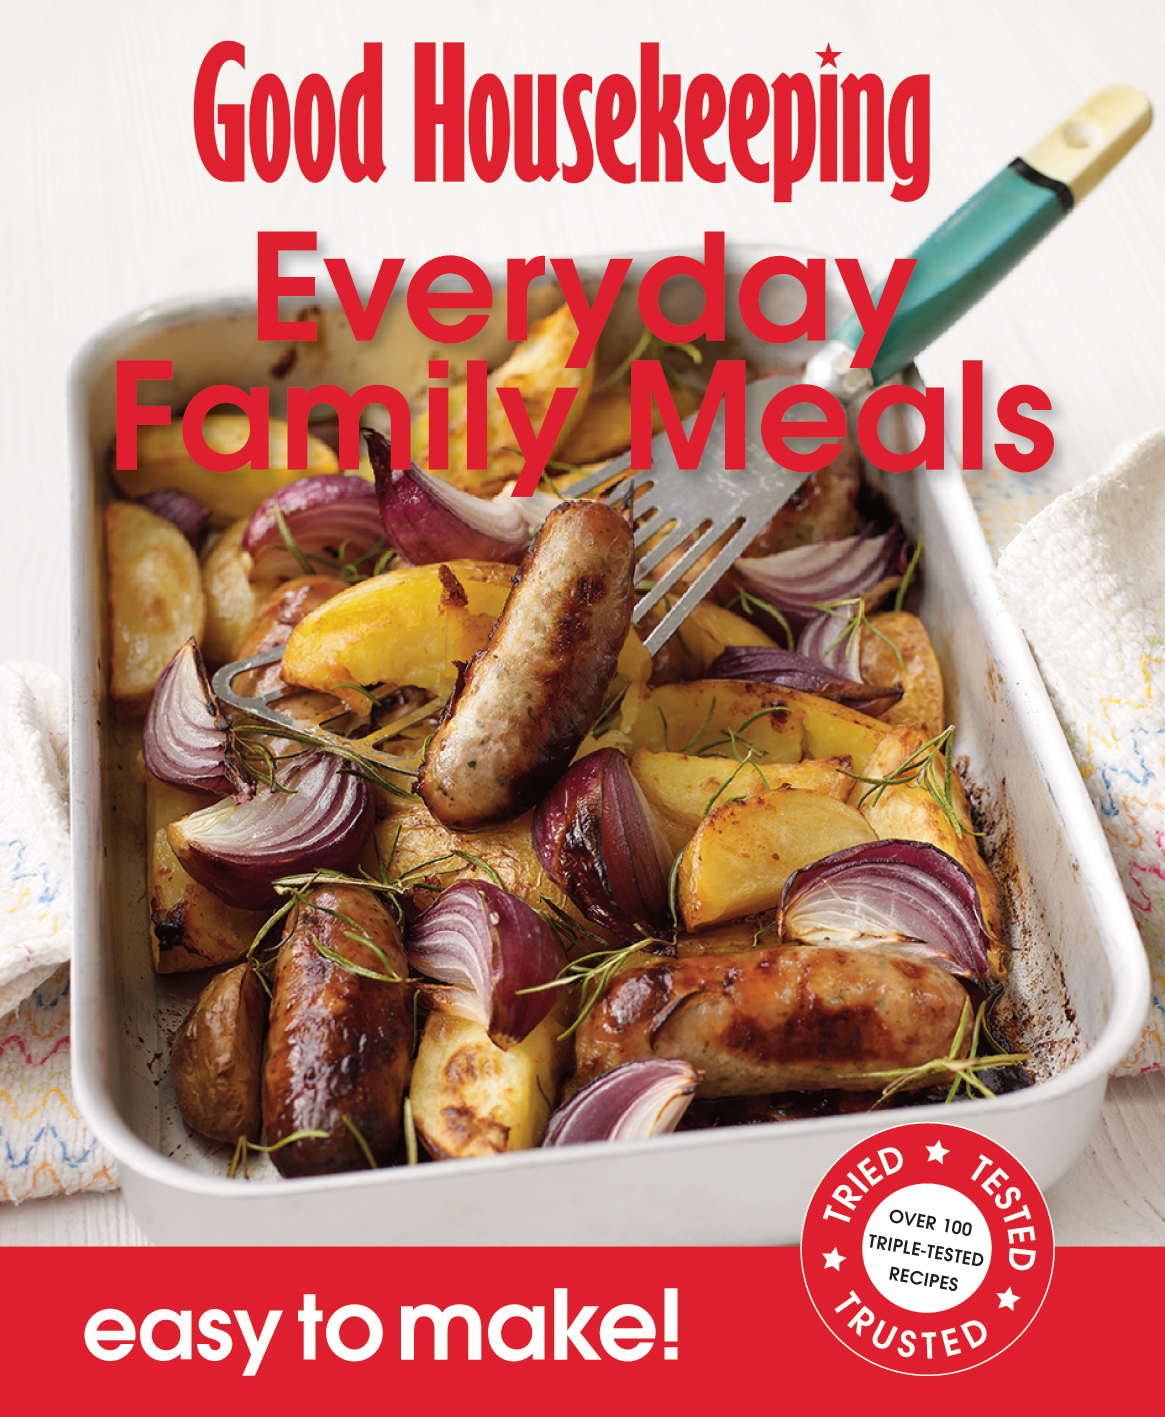 Good Housekeeping Easy to Make! Everyday Family Meals